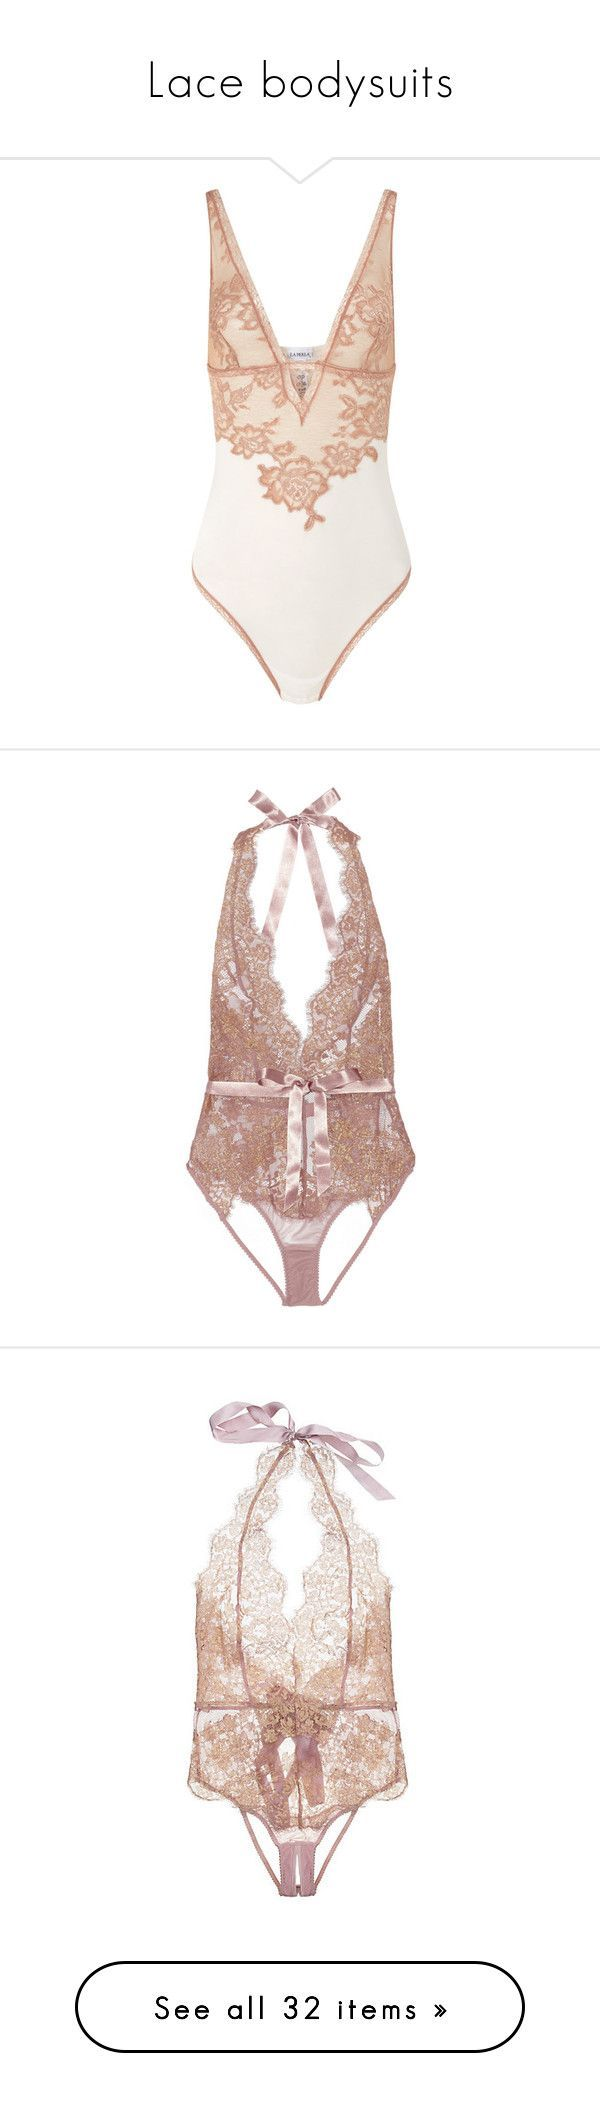 """""""Lace bodysuits"""" by chiaral95 ❤ liked on Polyvore featuring intimates, shapewear, bodysuit, underwear, lingerie, bodysuits, agent provocateur, pink, open back body suit and body suit - cheap intimates online, all about lingerie, silk lingerie *sponsored https://www.pinterest.com/lingerie_yes/ https://www.pinterest.com/explore/intimates/ https://www.pinterest.com/lingerie_yes/plus-size-lingerie/ http://www.adoreme.com/sexy-lingerie.html"""